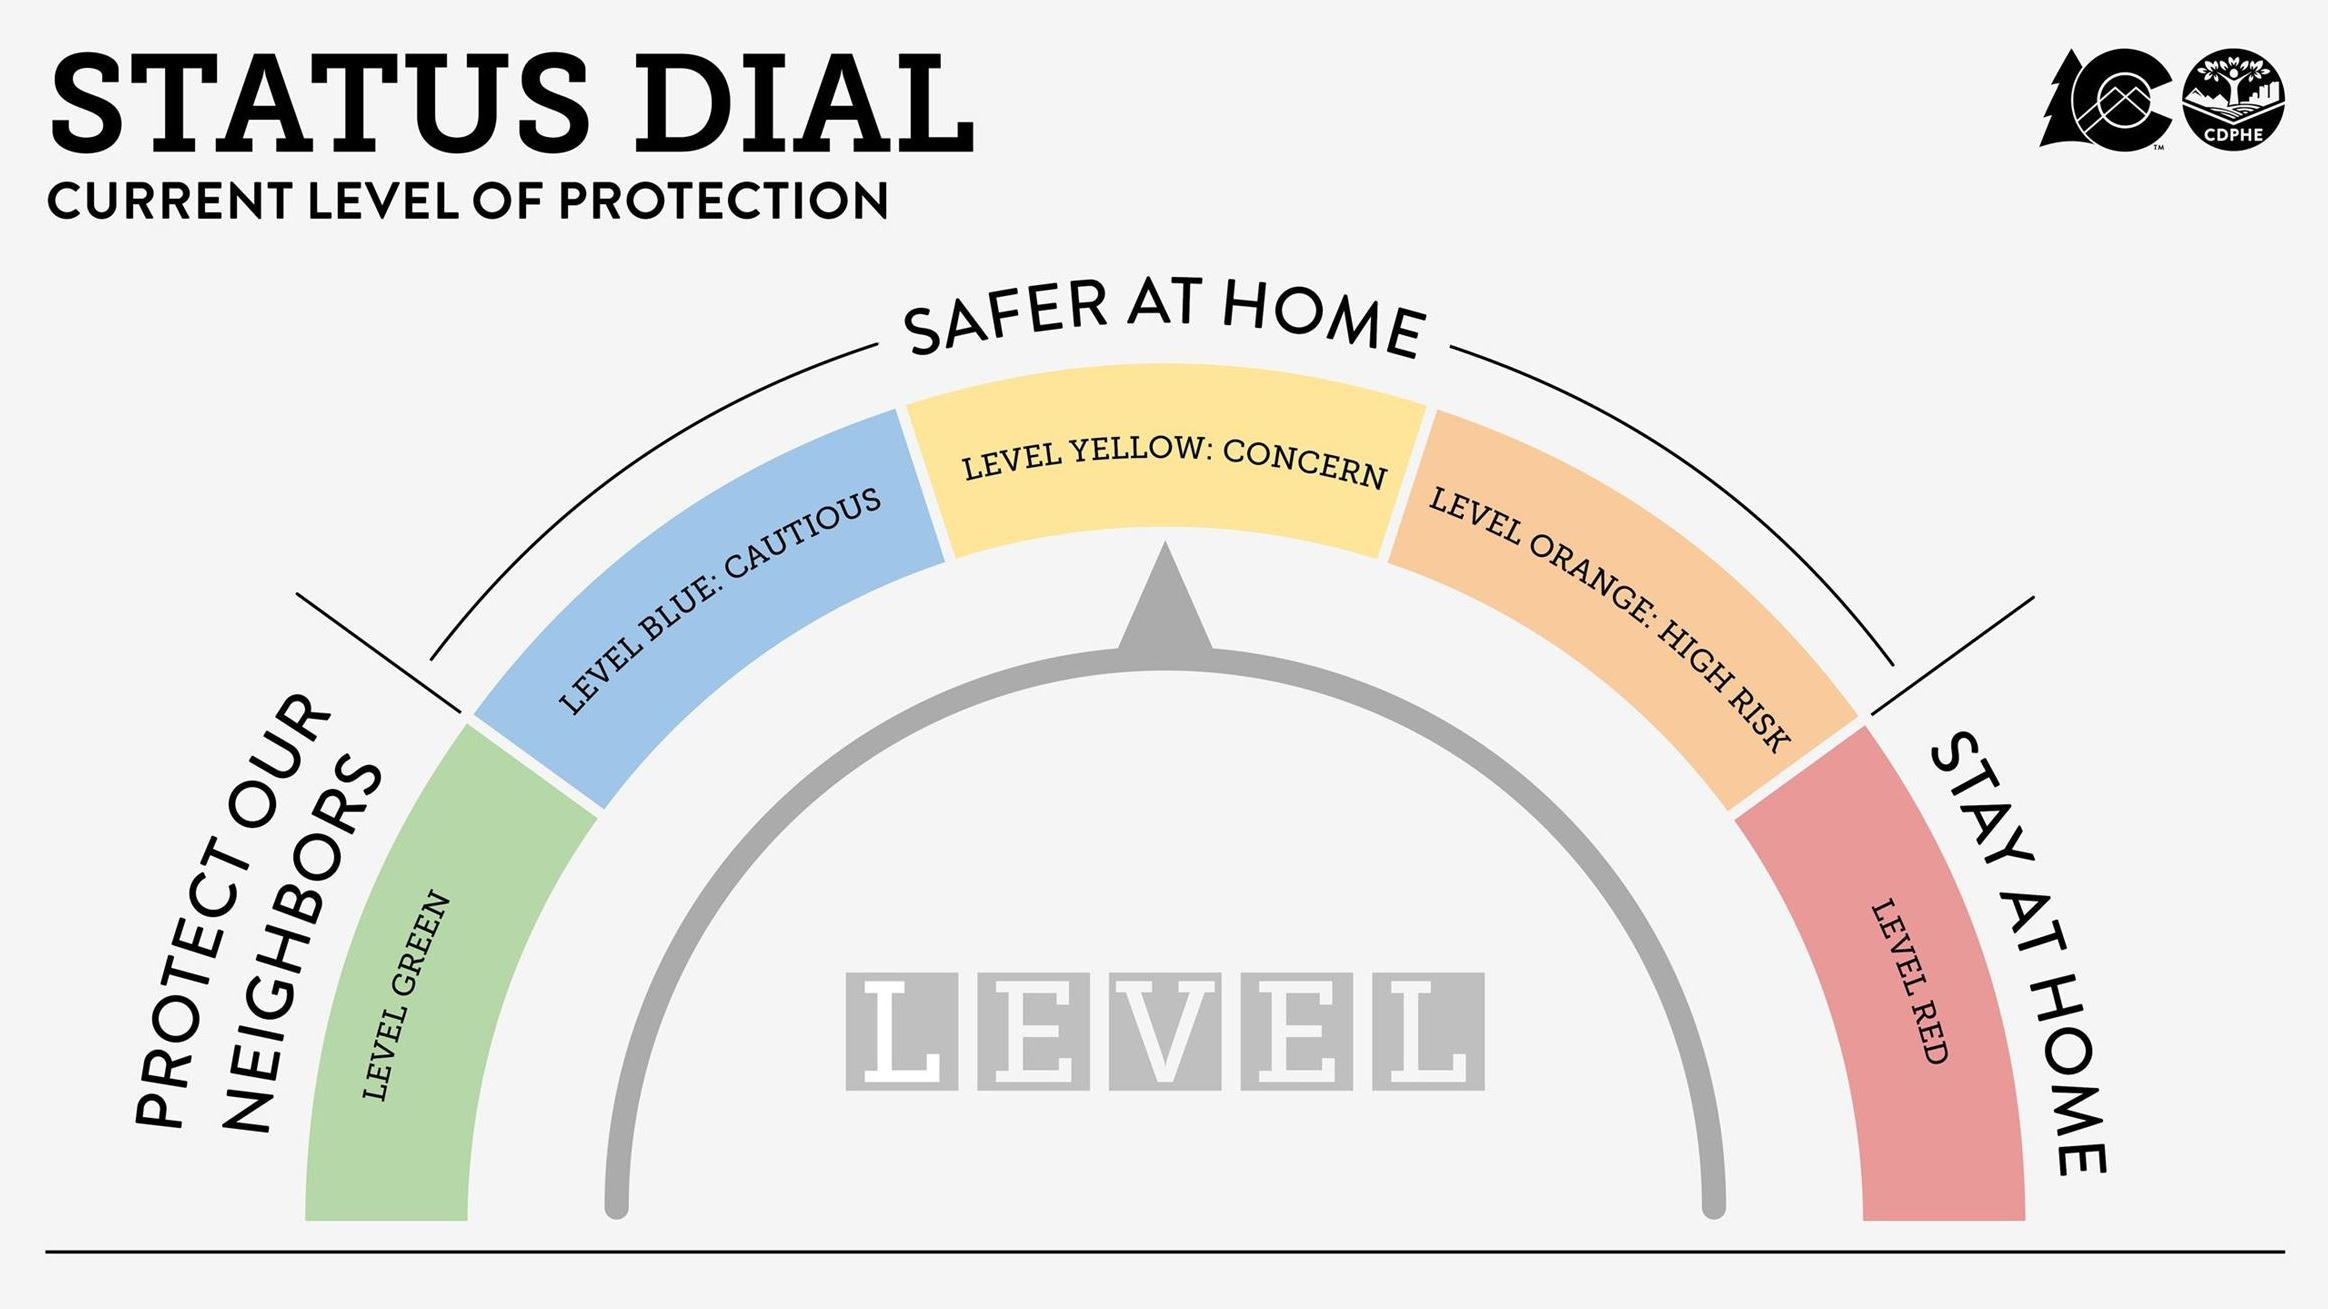 Covid Status Dial with different colors for level of severity